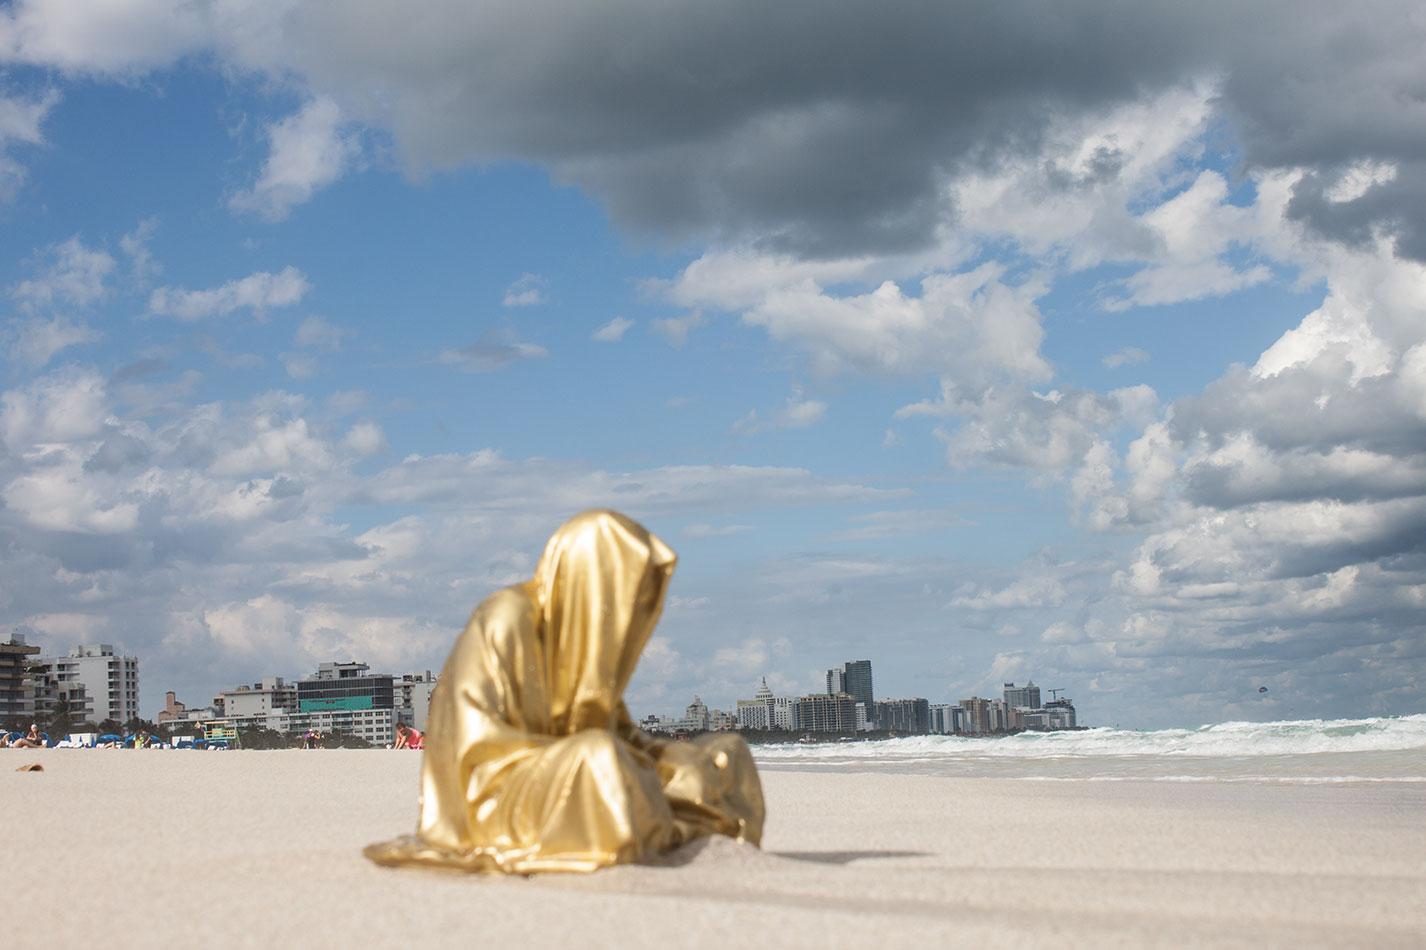 public-art-basel-miami-beach-fair-usa-florida-guardians-of-time-manfred-kili-kielnhofer-contemporary-fine-art-modern-arts-design-antiques-sculpture-6853